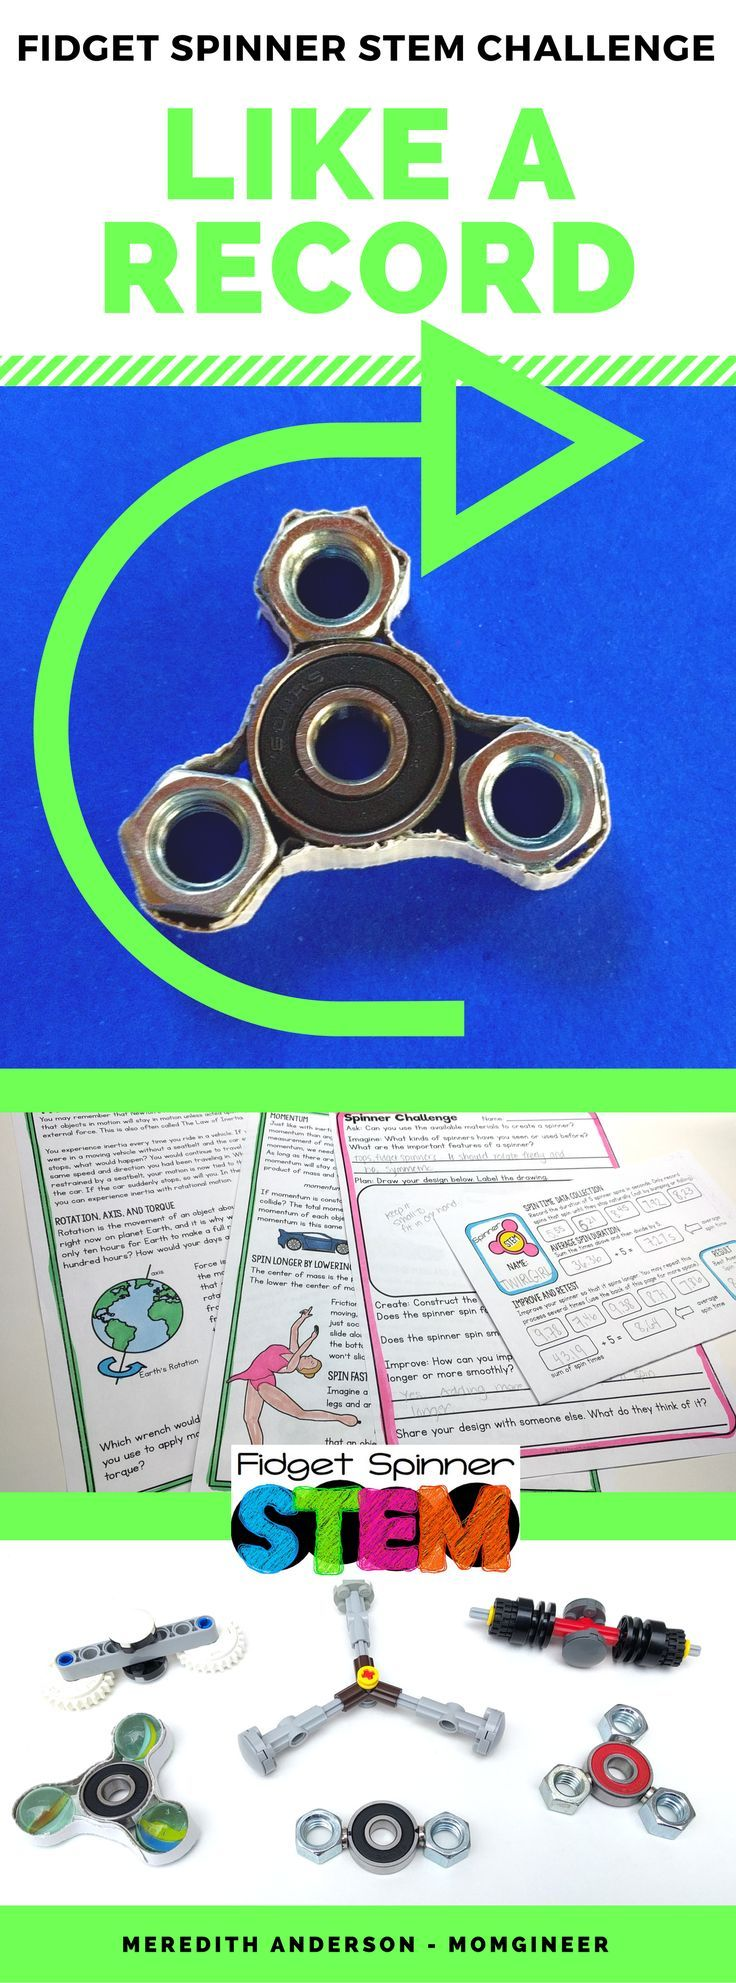 Research Based Classroom Design : Best middle school science images on pinterest high